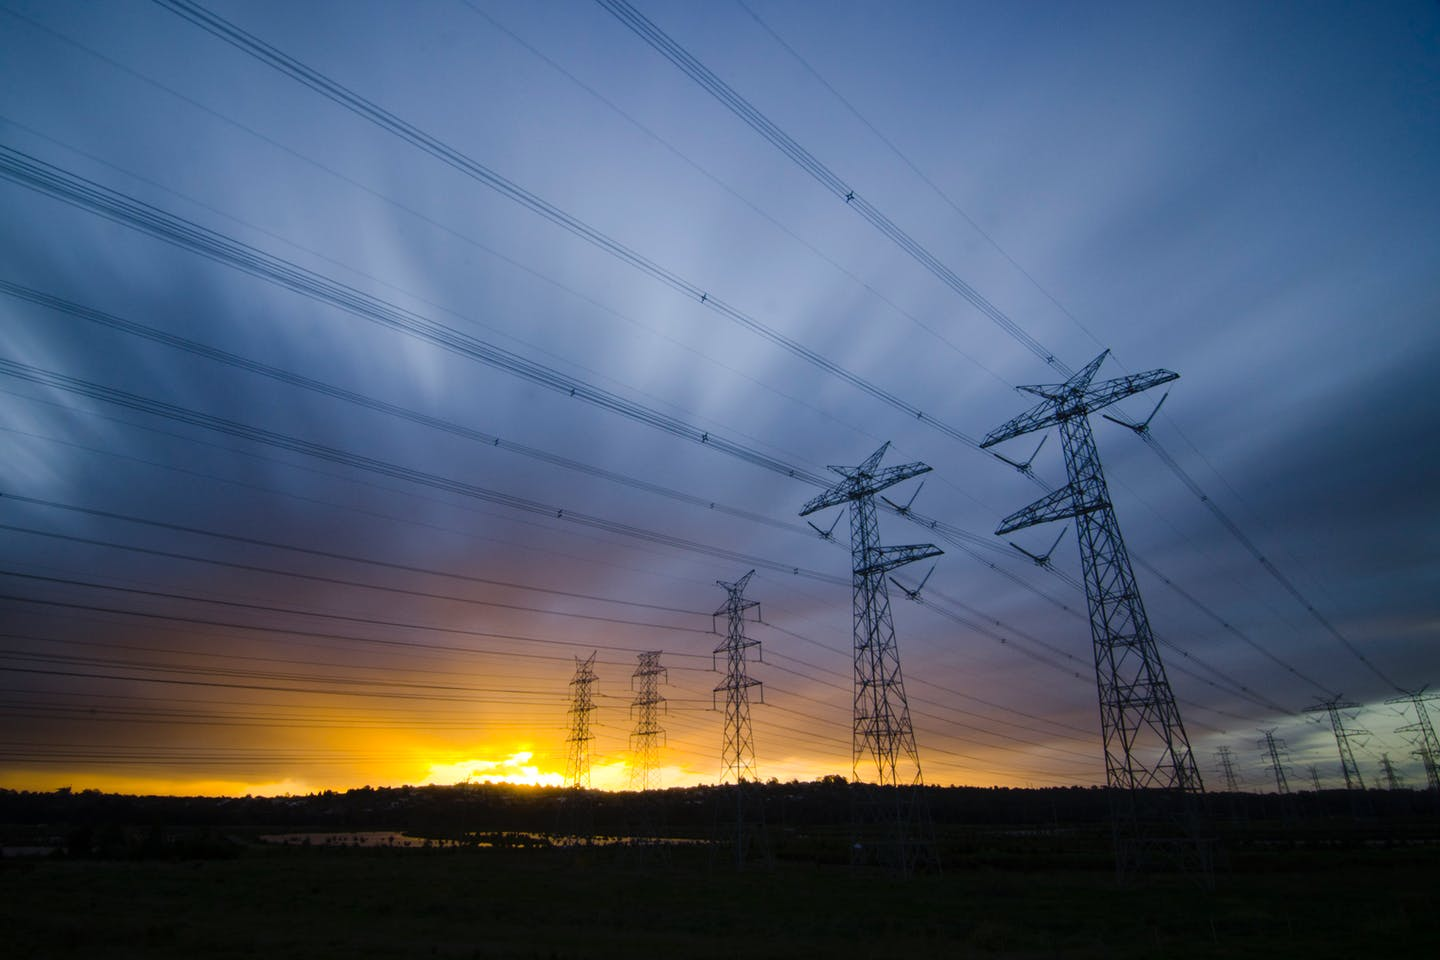 dawn over power lines in australia